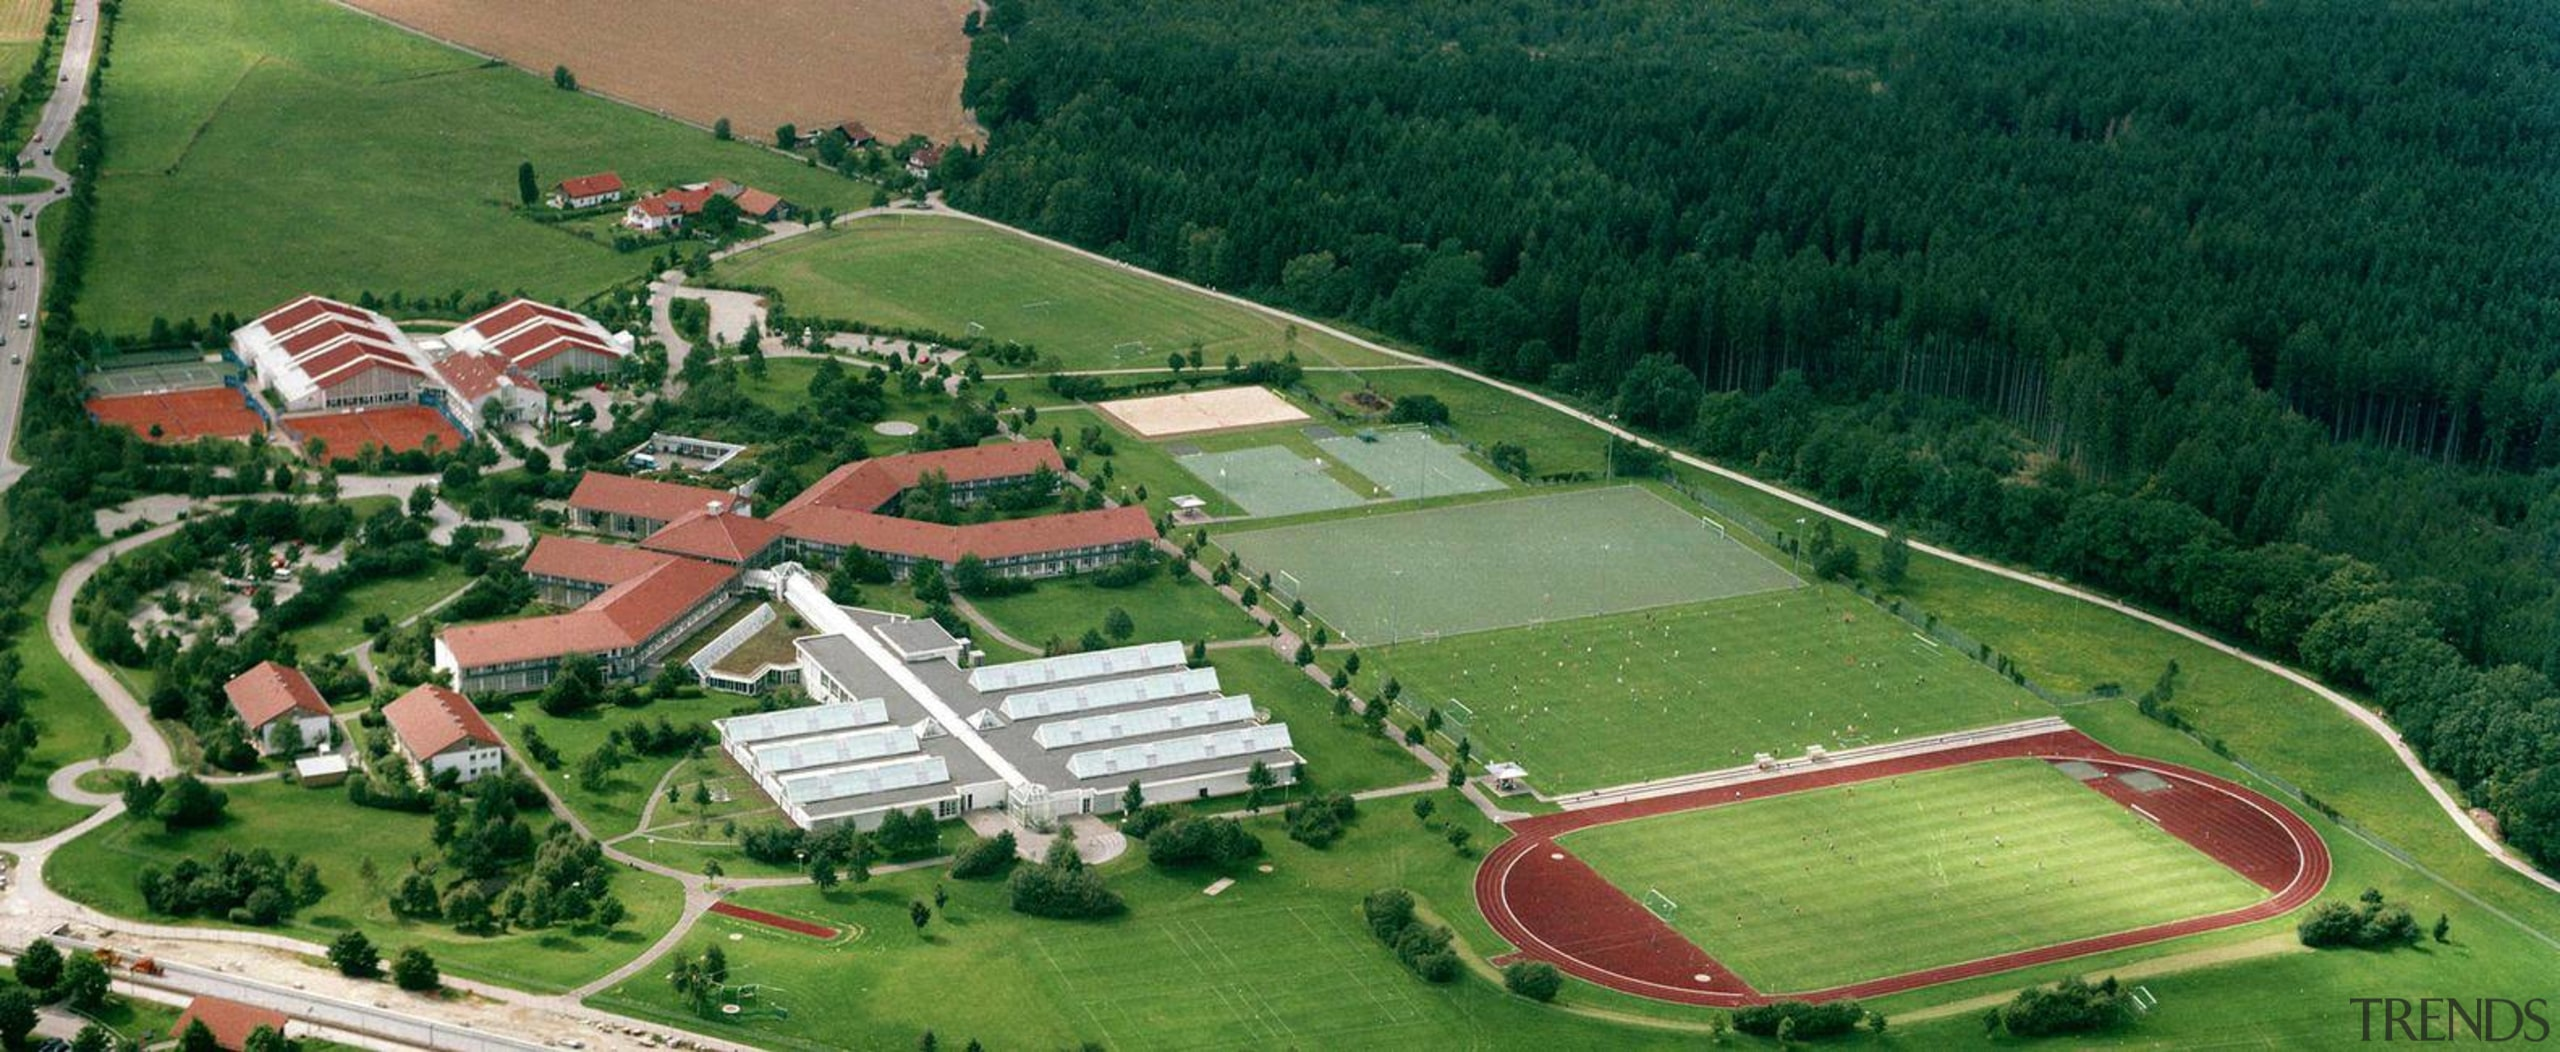 Oberhaching College of Physical Education was jointly planned aerial photography, bird's eye view, estate, farm, land lot, landscape, leisure, rural area, suburb, green